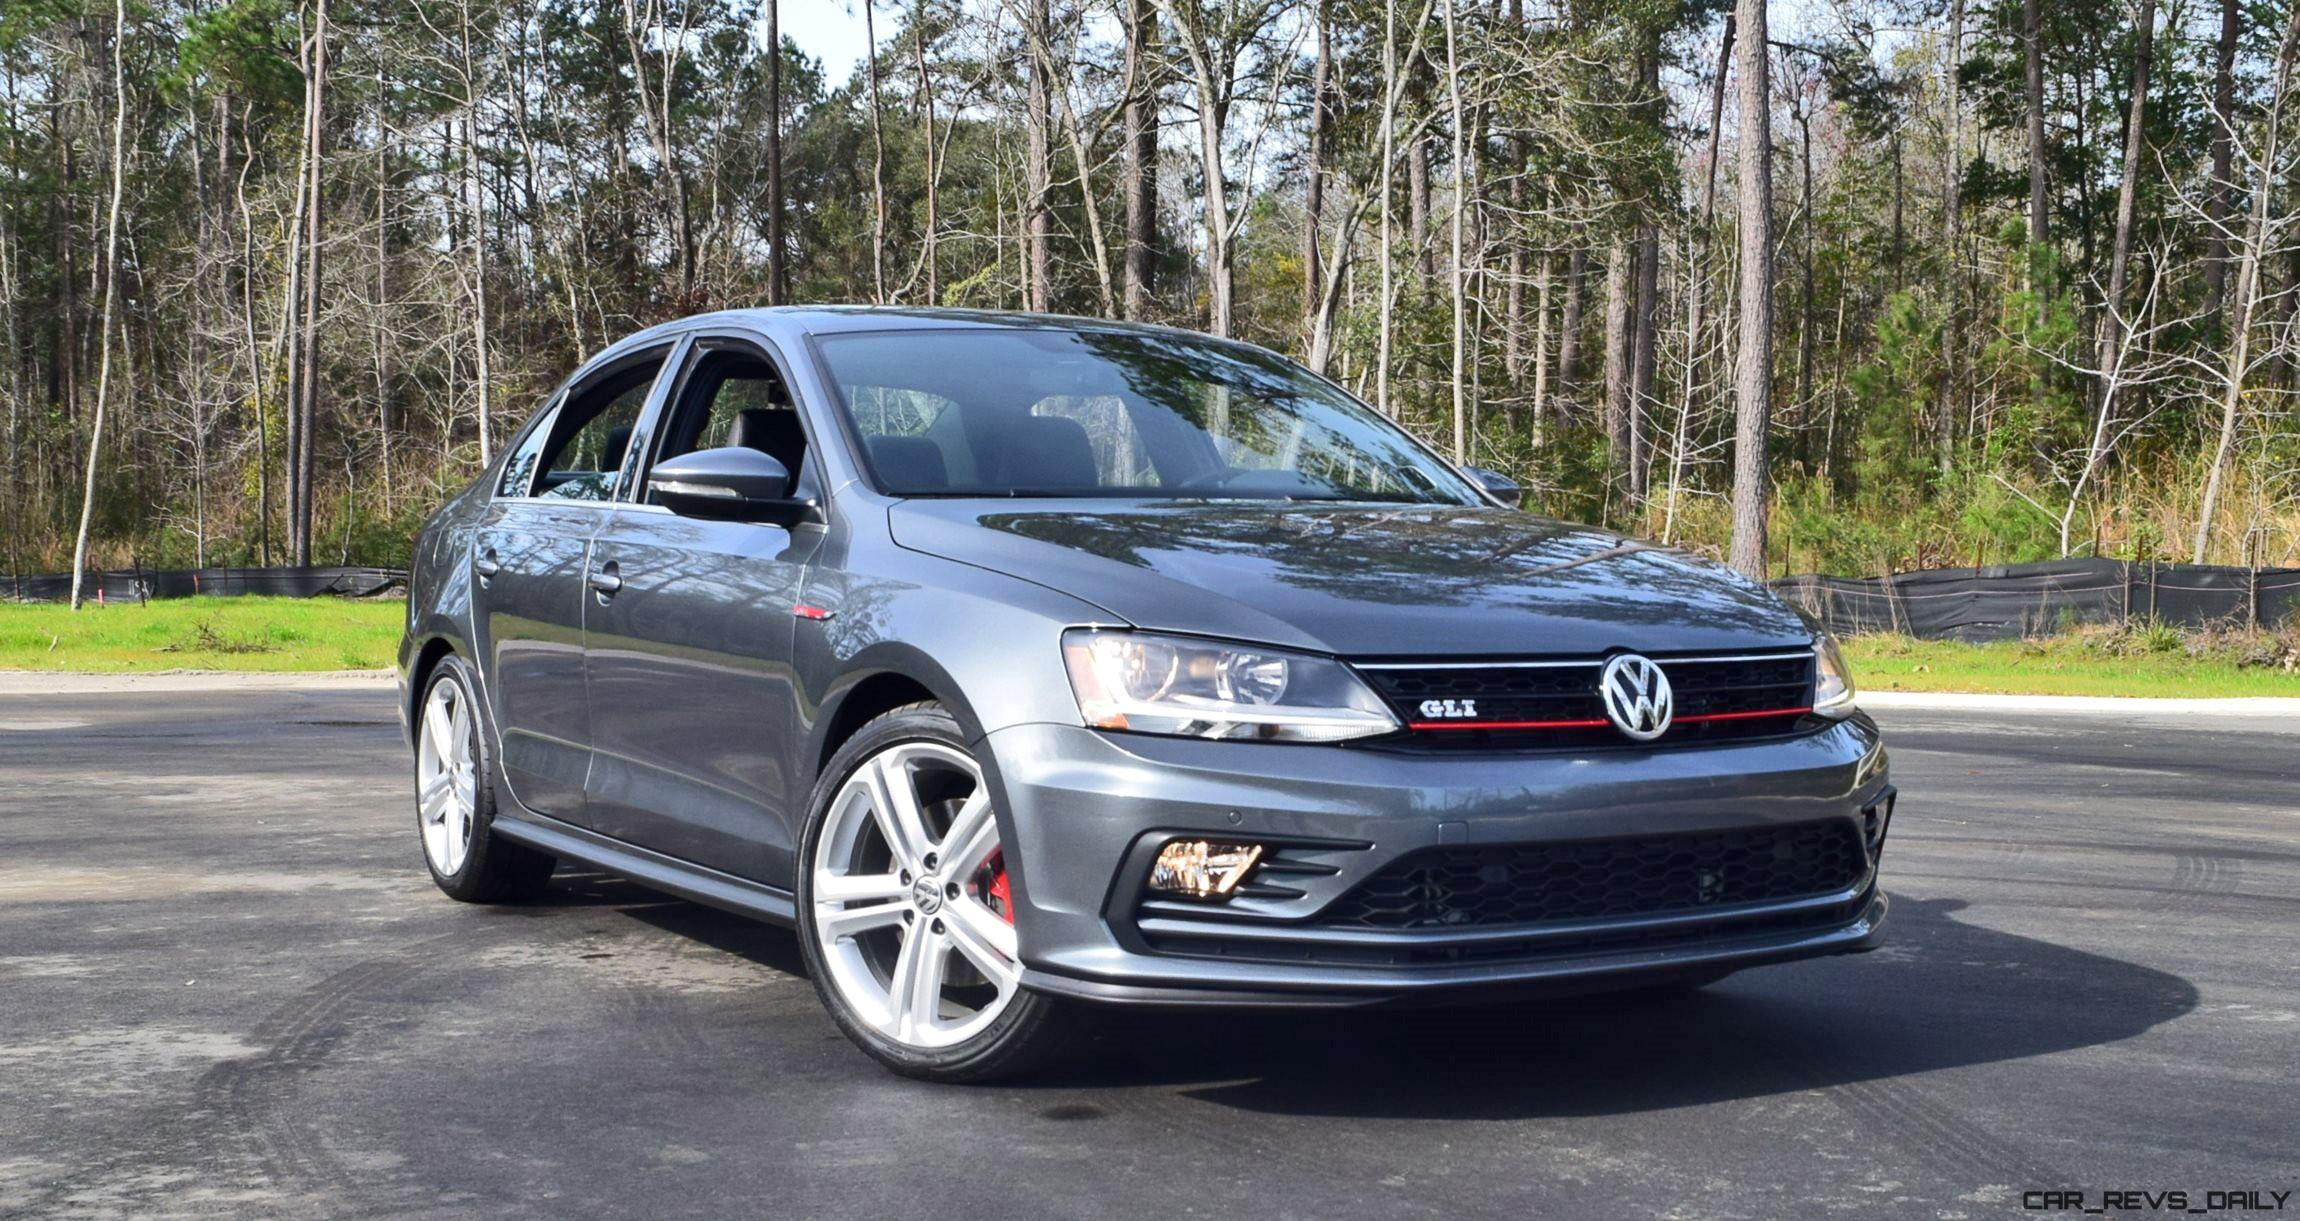 2017 Vw Jetta Gli Dsg Automatic Hd Road Test Review 16